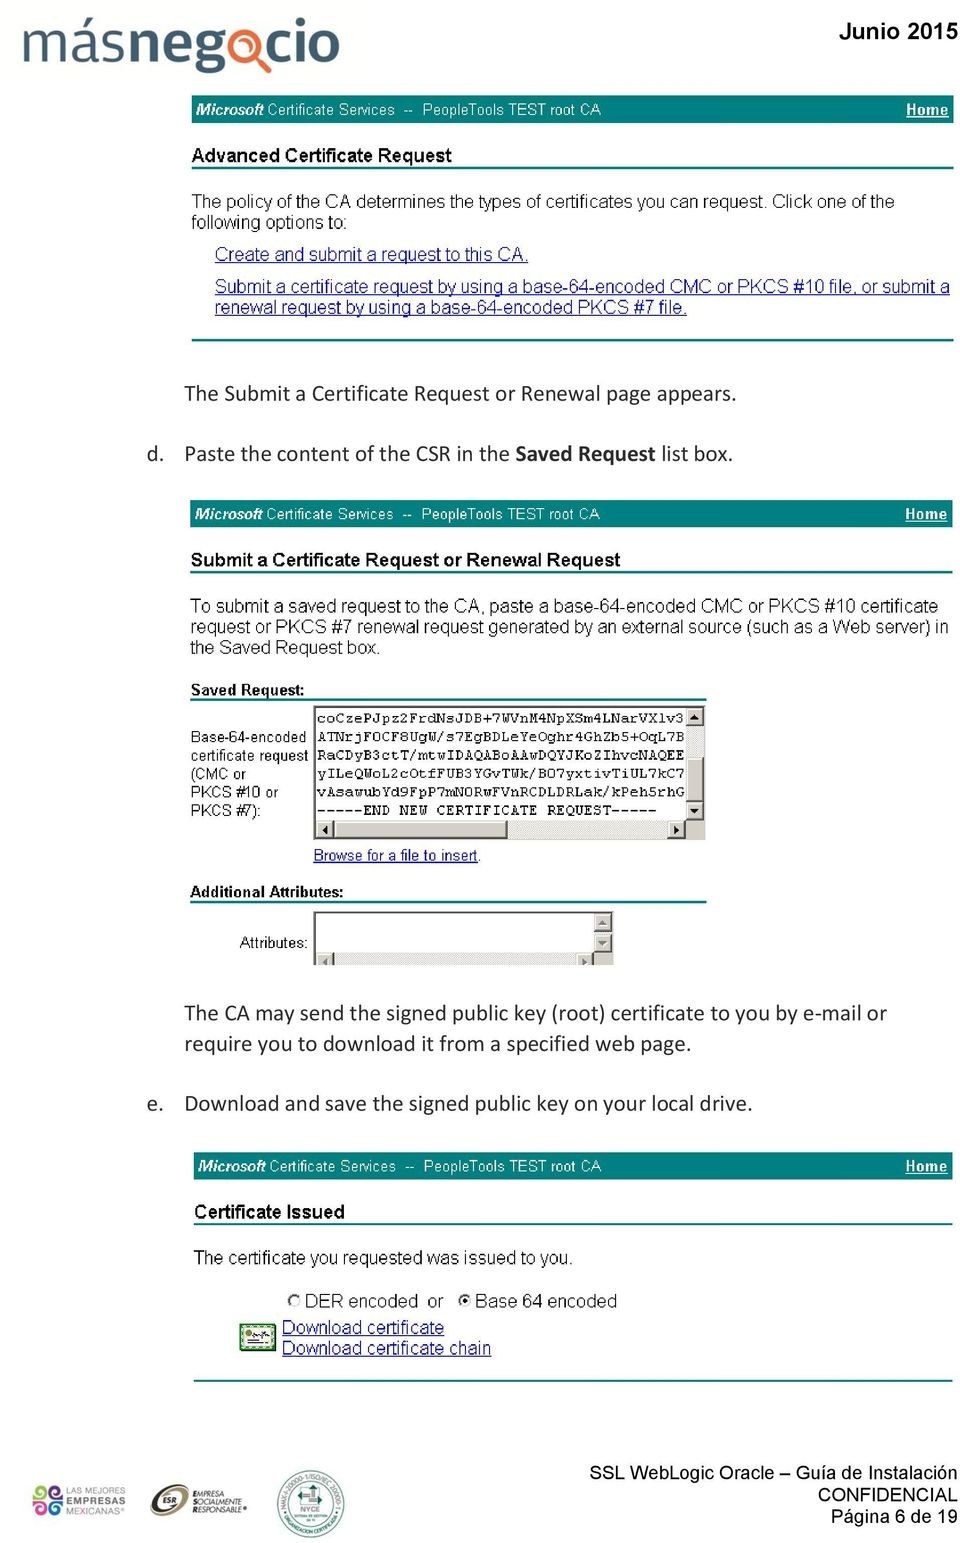 The CA may send the signed public key (root) certificate to you by e-mail or